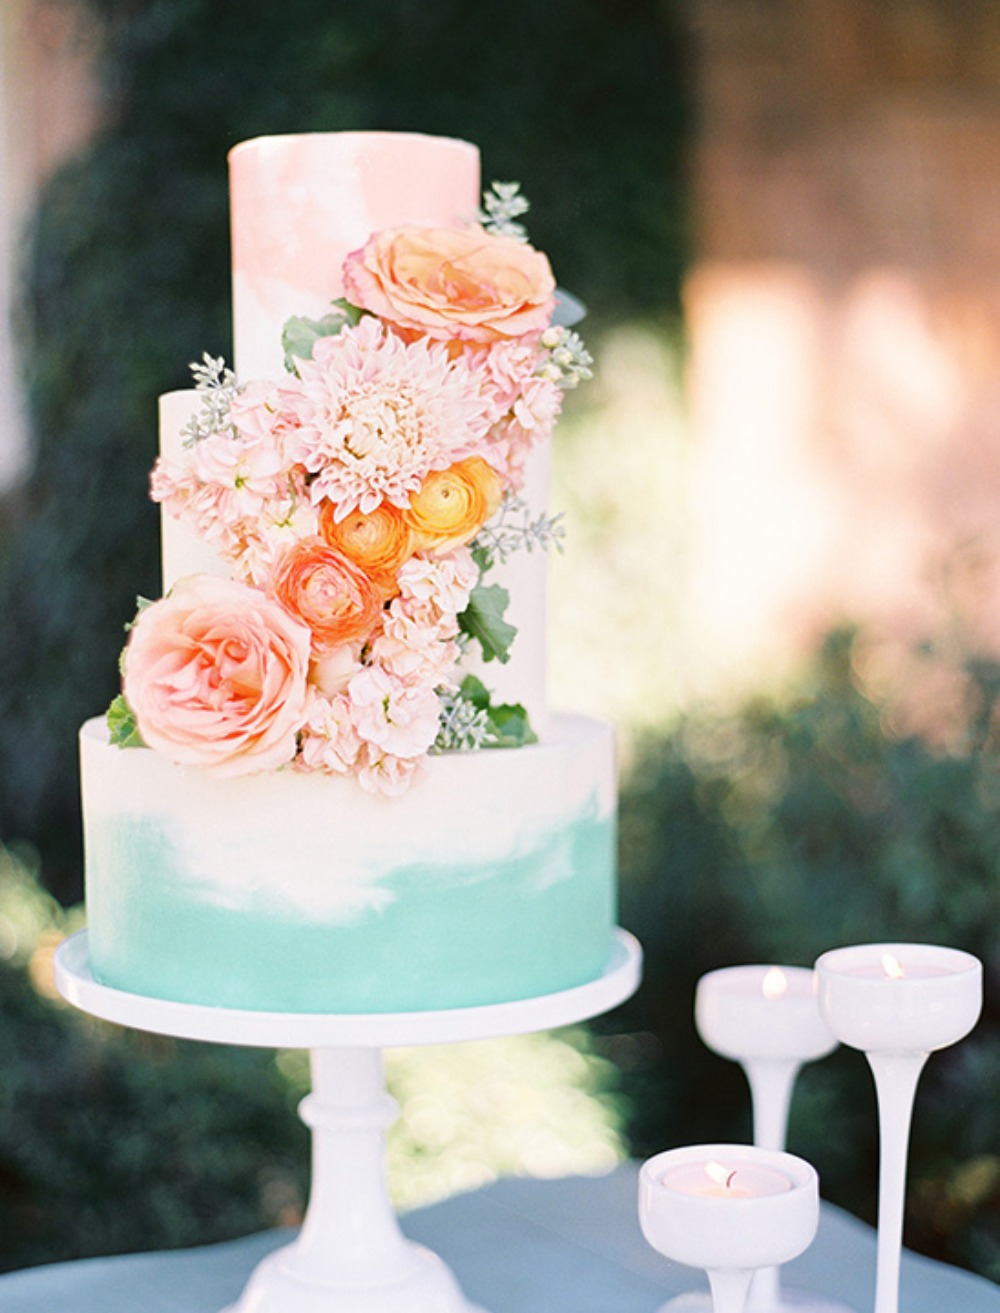 Soft Watercolor cake by Sugar Bee Sweets Bakery